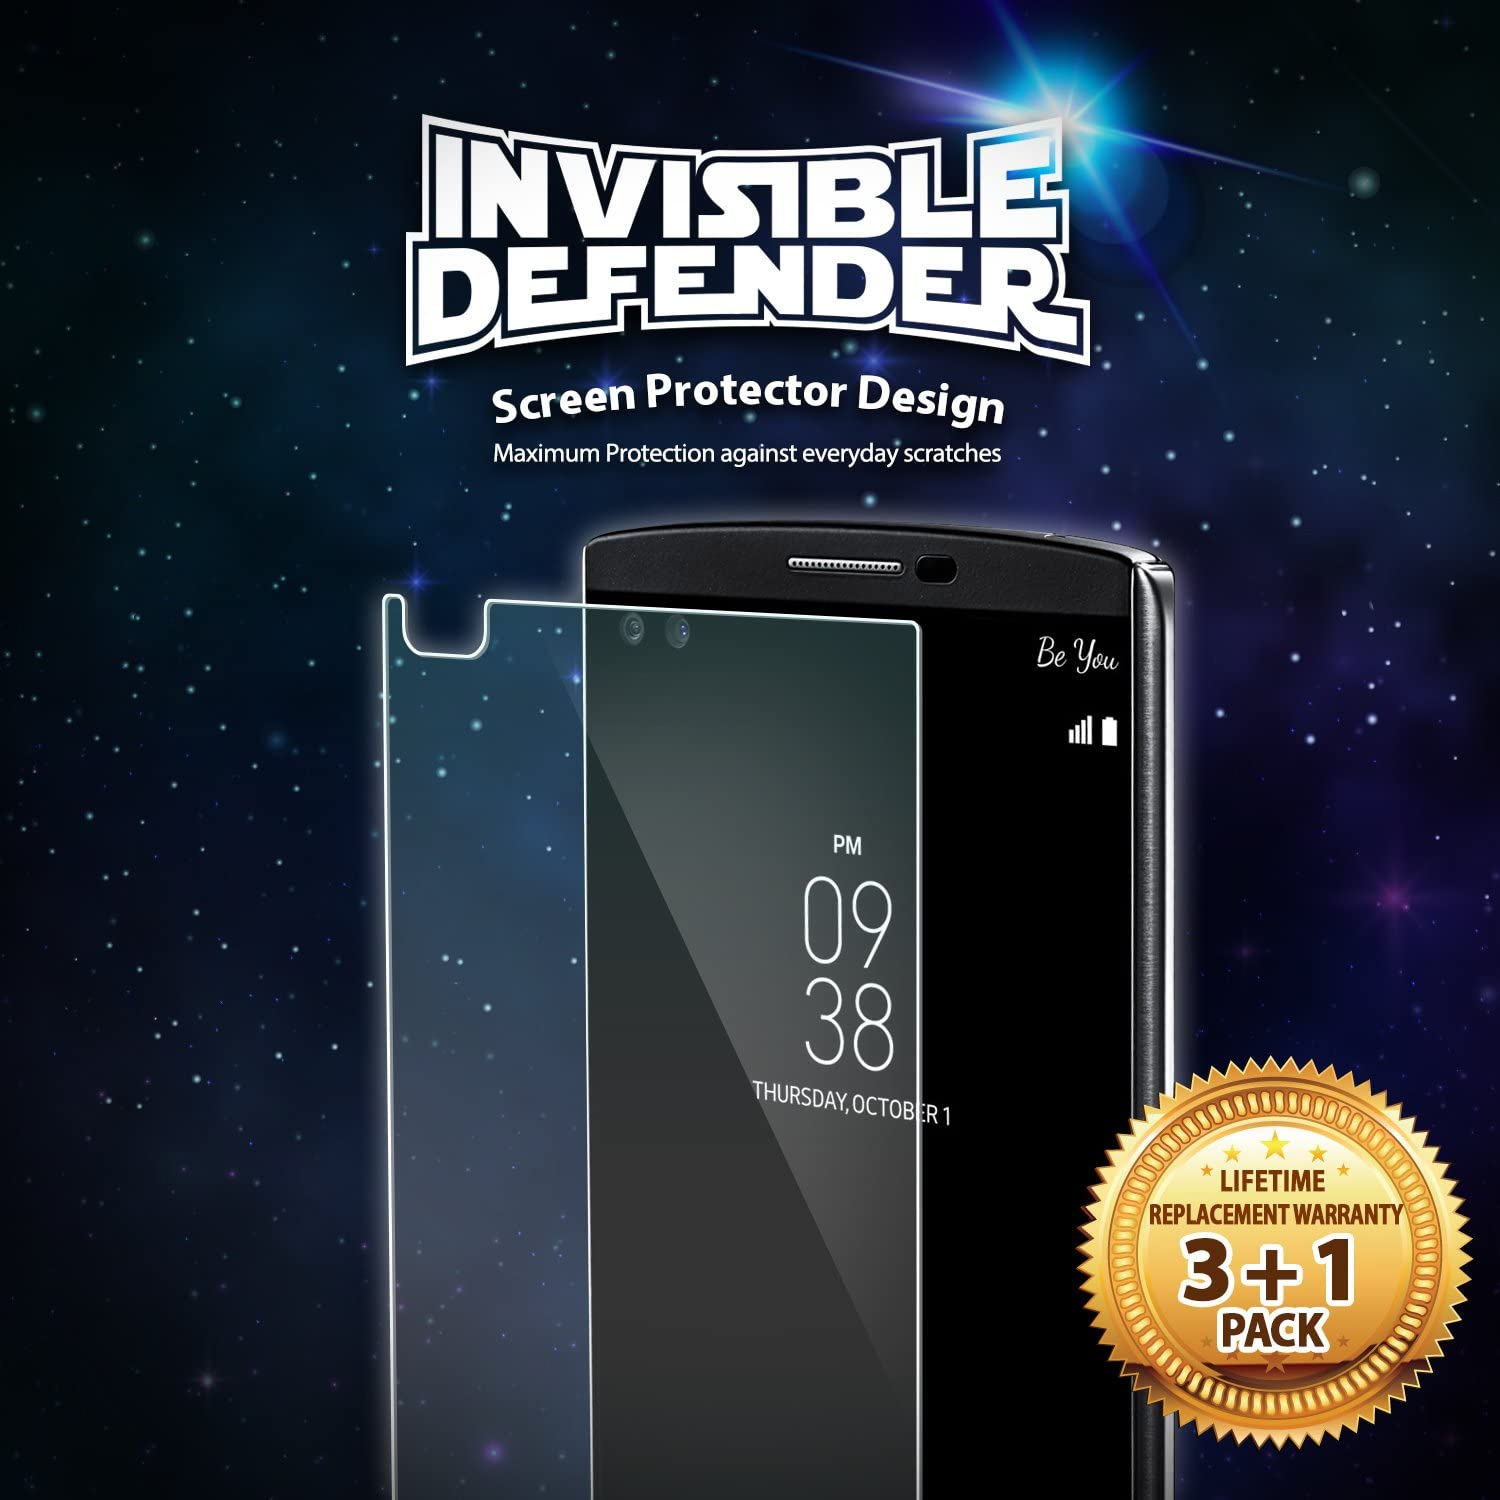 lg v10 screen protector - ringke invisible defender